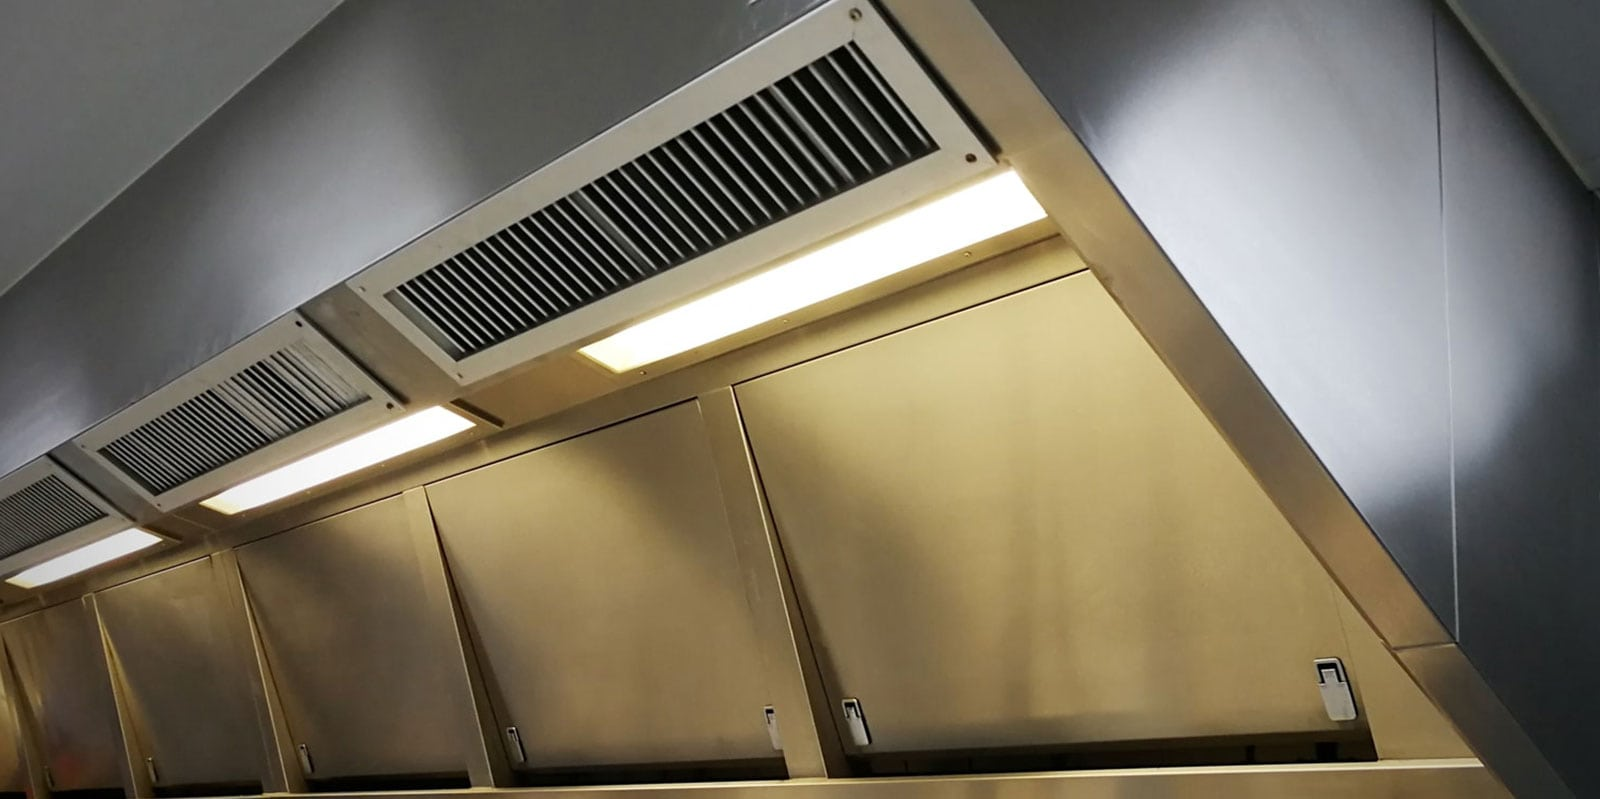 regular commercial kitchen extractor fan cleaning uk